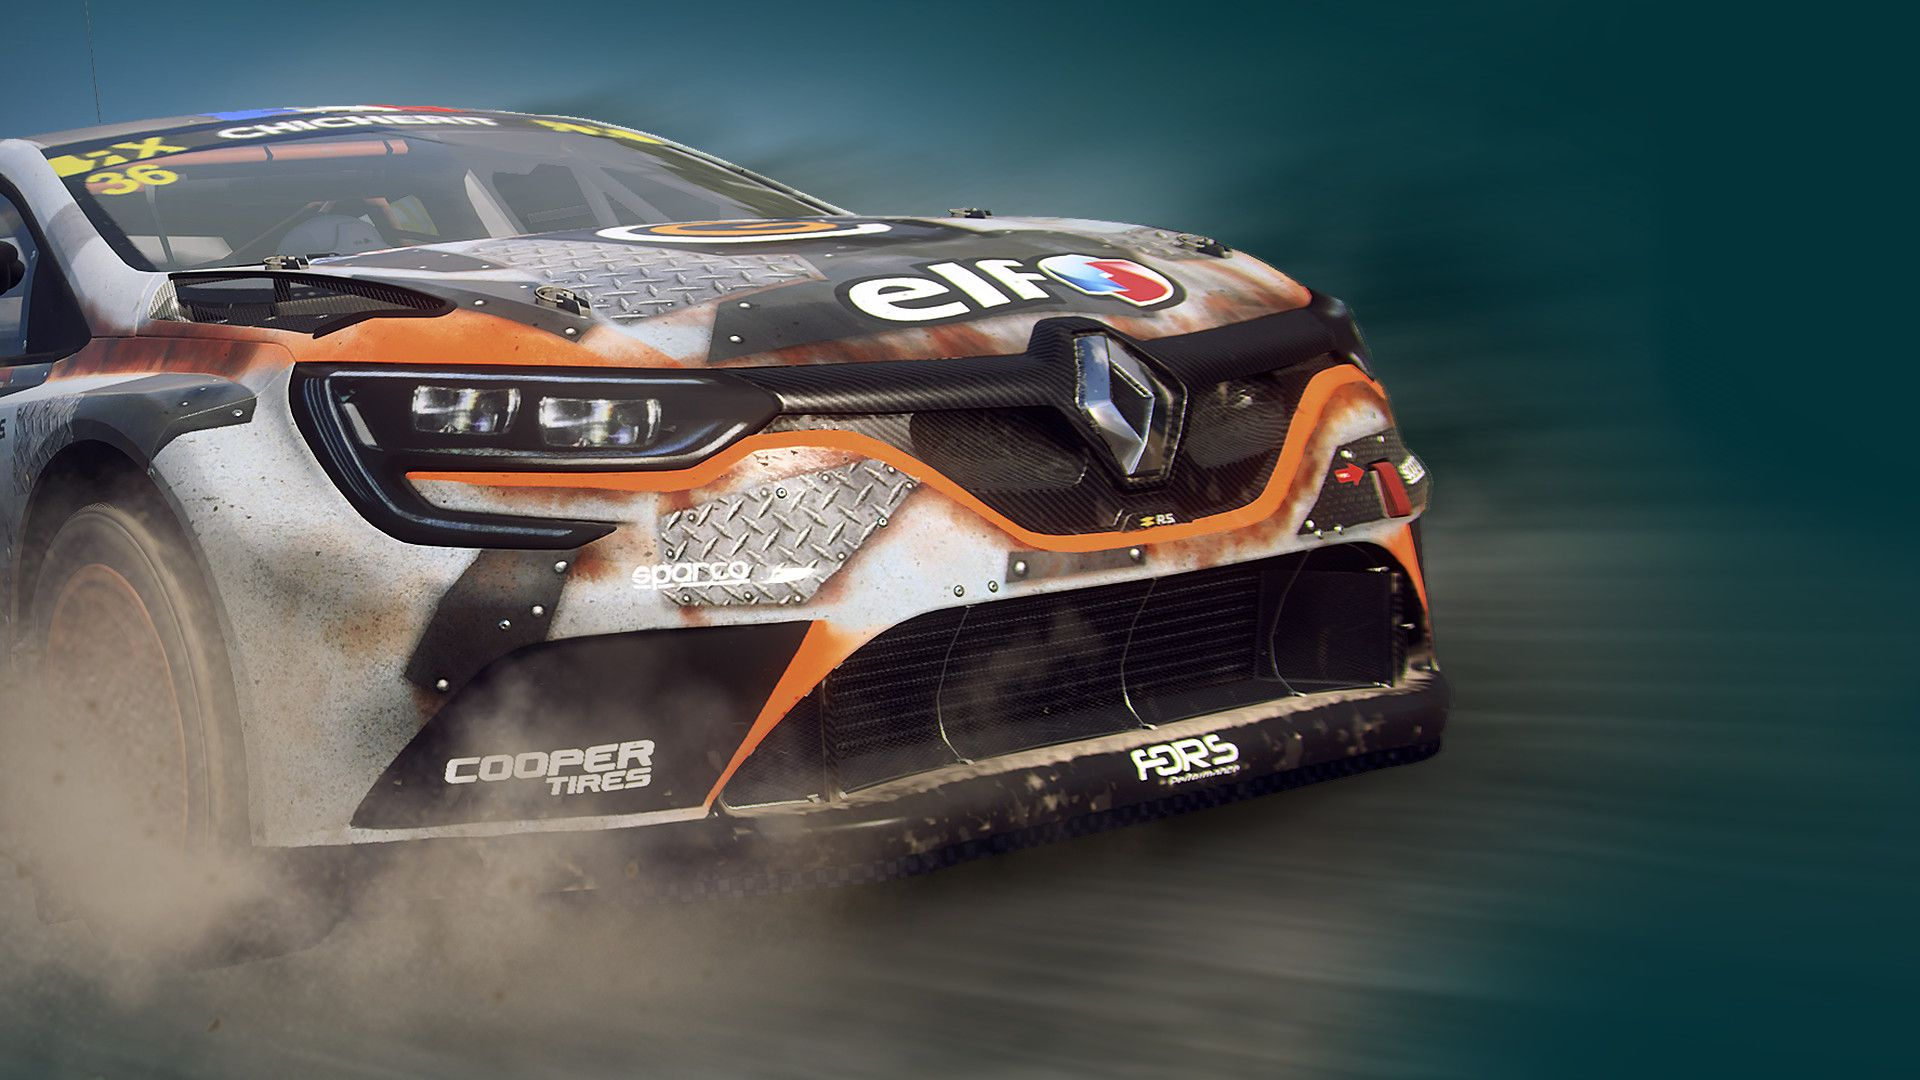 DiRT Rally 2.0 - Renault Megane R.S. RX